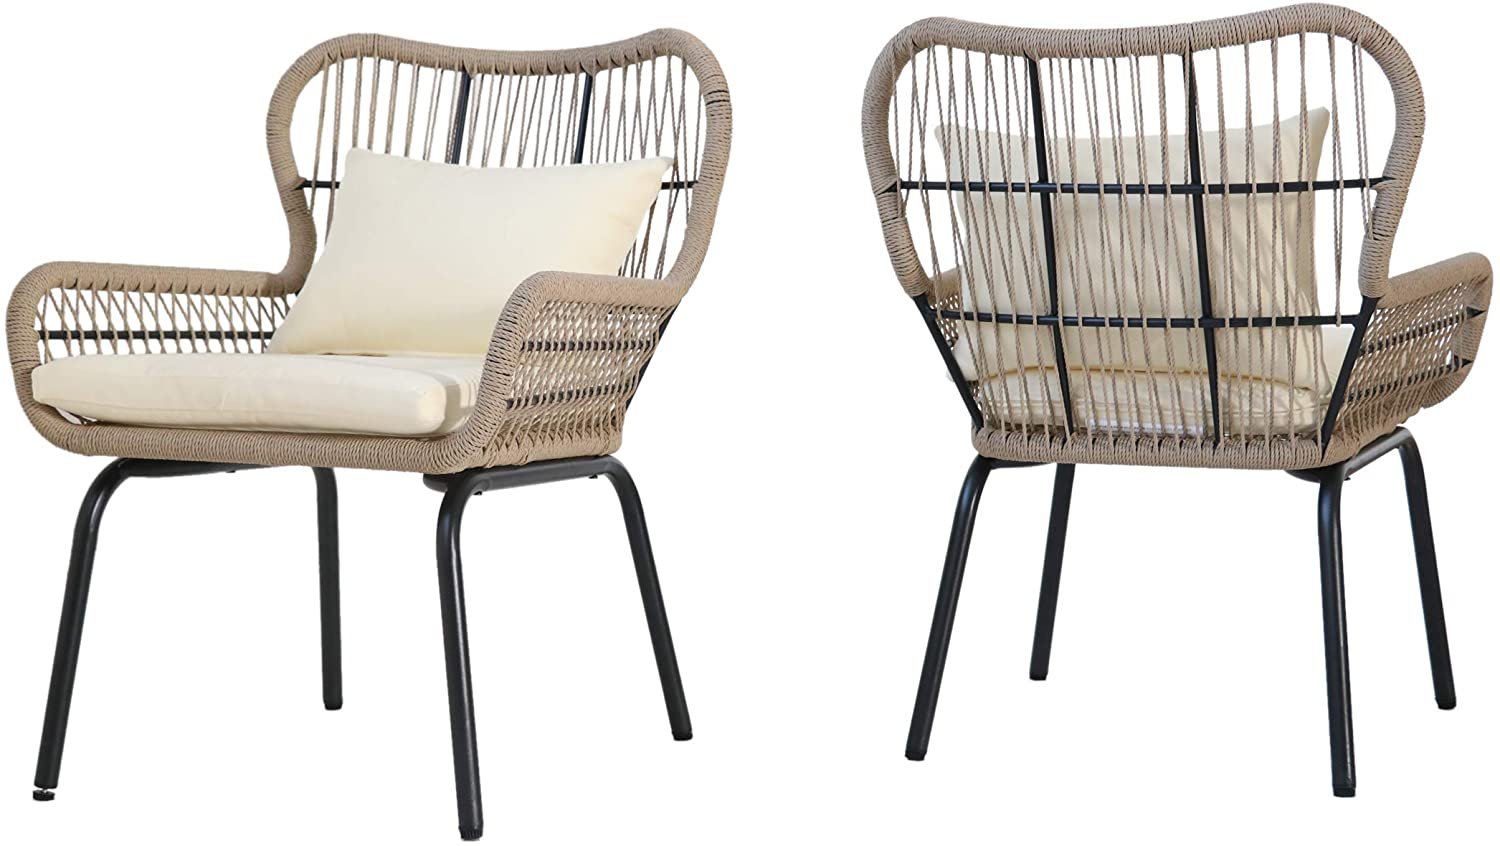 Christopher Knight Home Kimberley Outdoor Club Chairs, Steel and Rope, Cushioned, Boho, Dark Gray, Brown, Beige